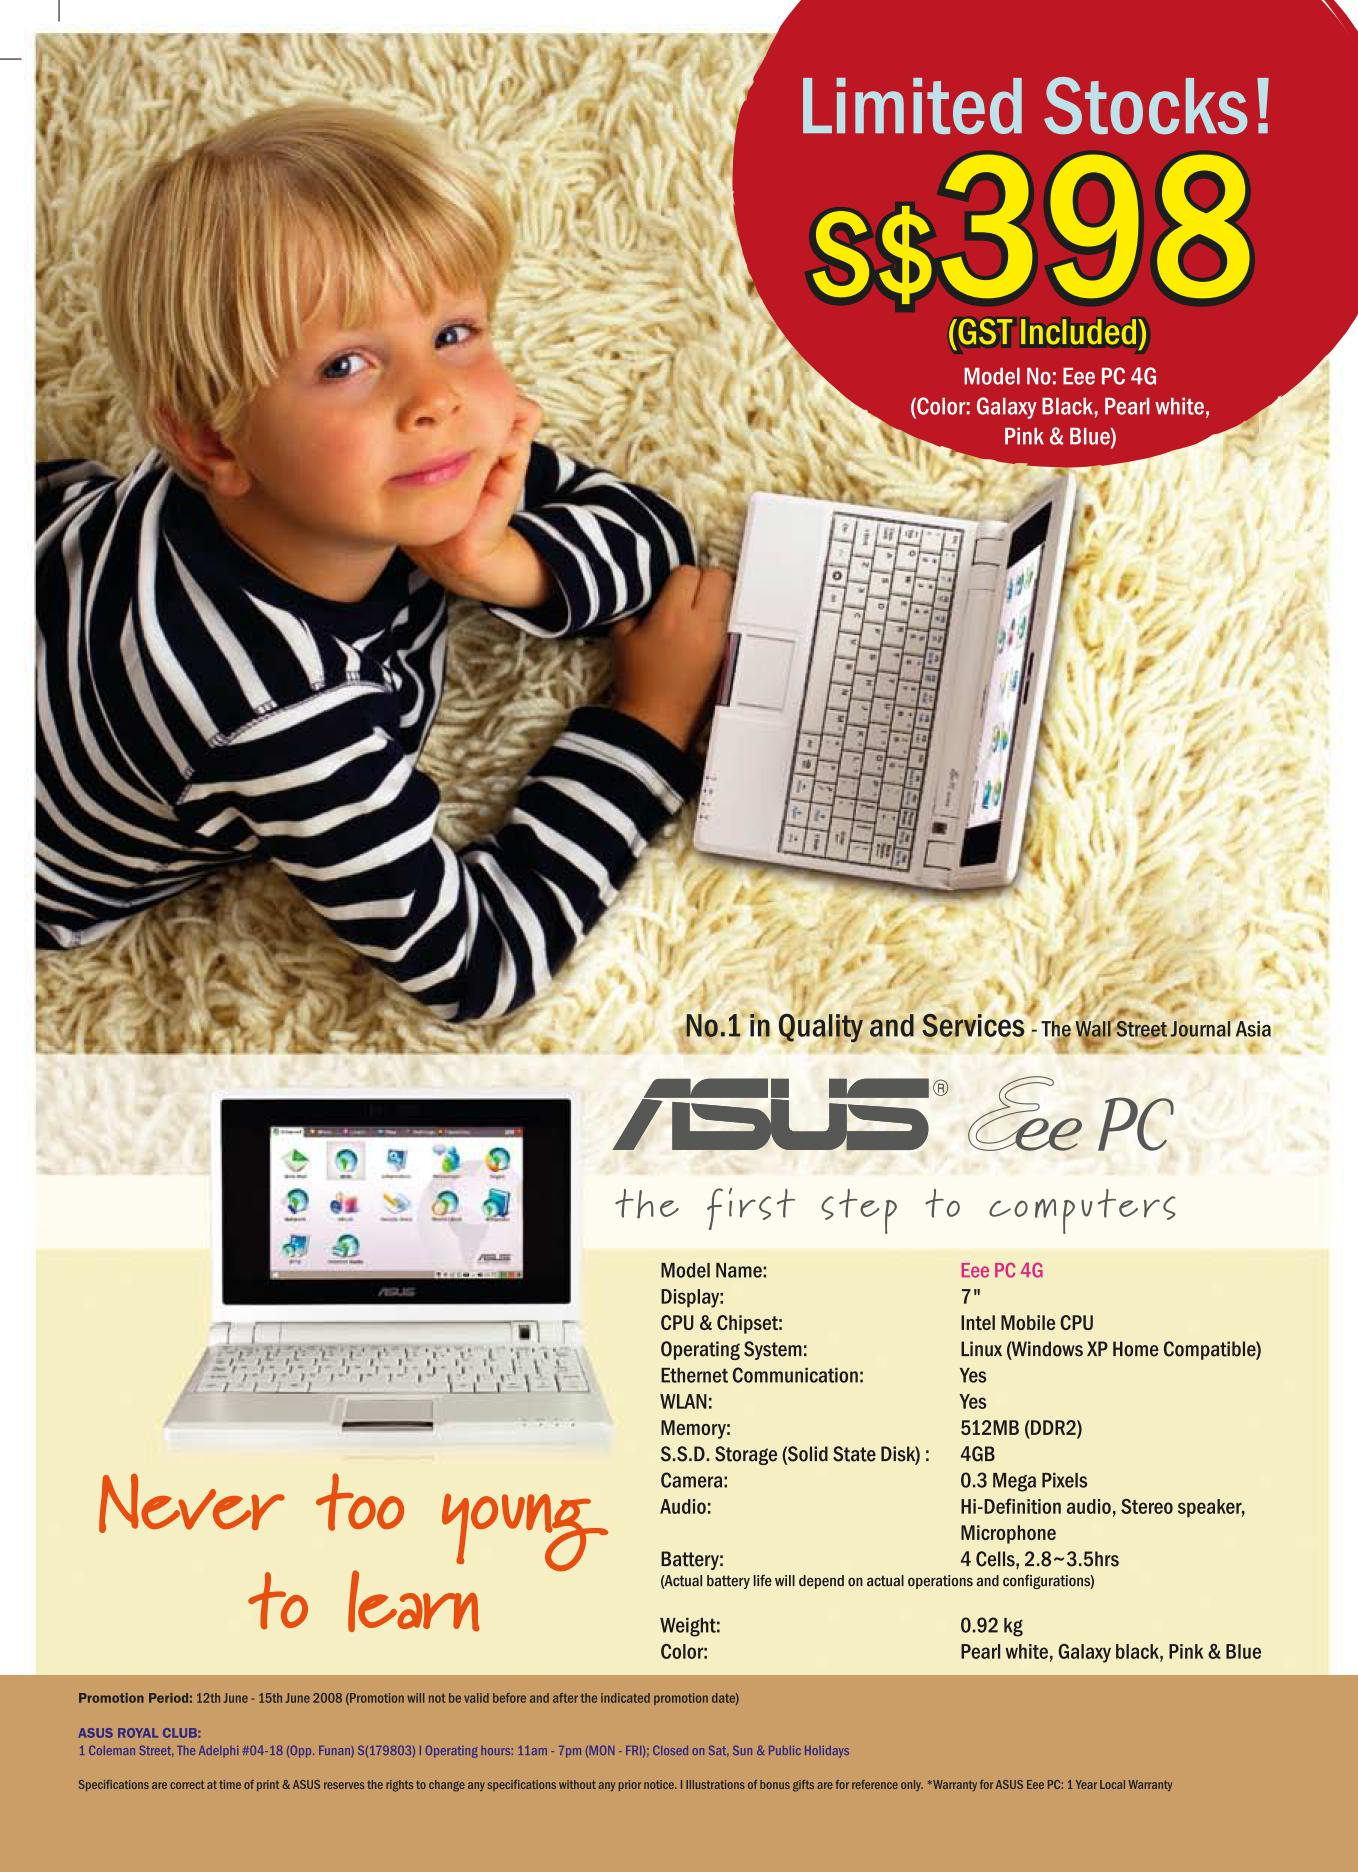 PC Show 2008 price list image brochure of Asus EeePC Front.pdf 01 (2)